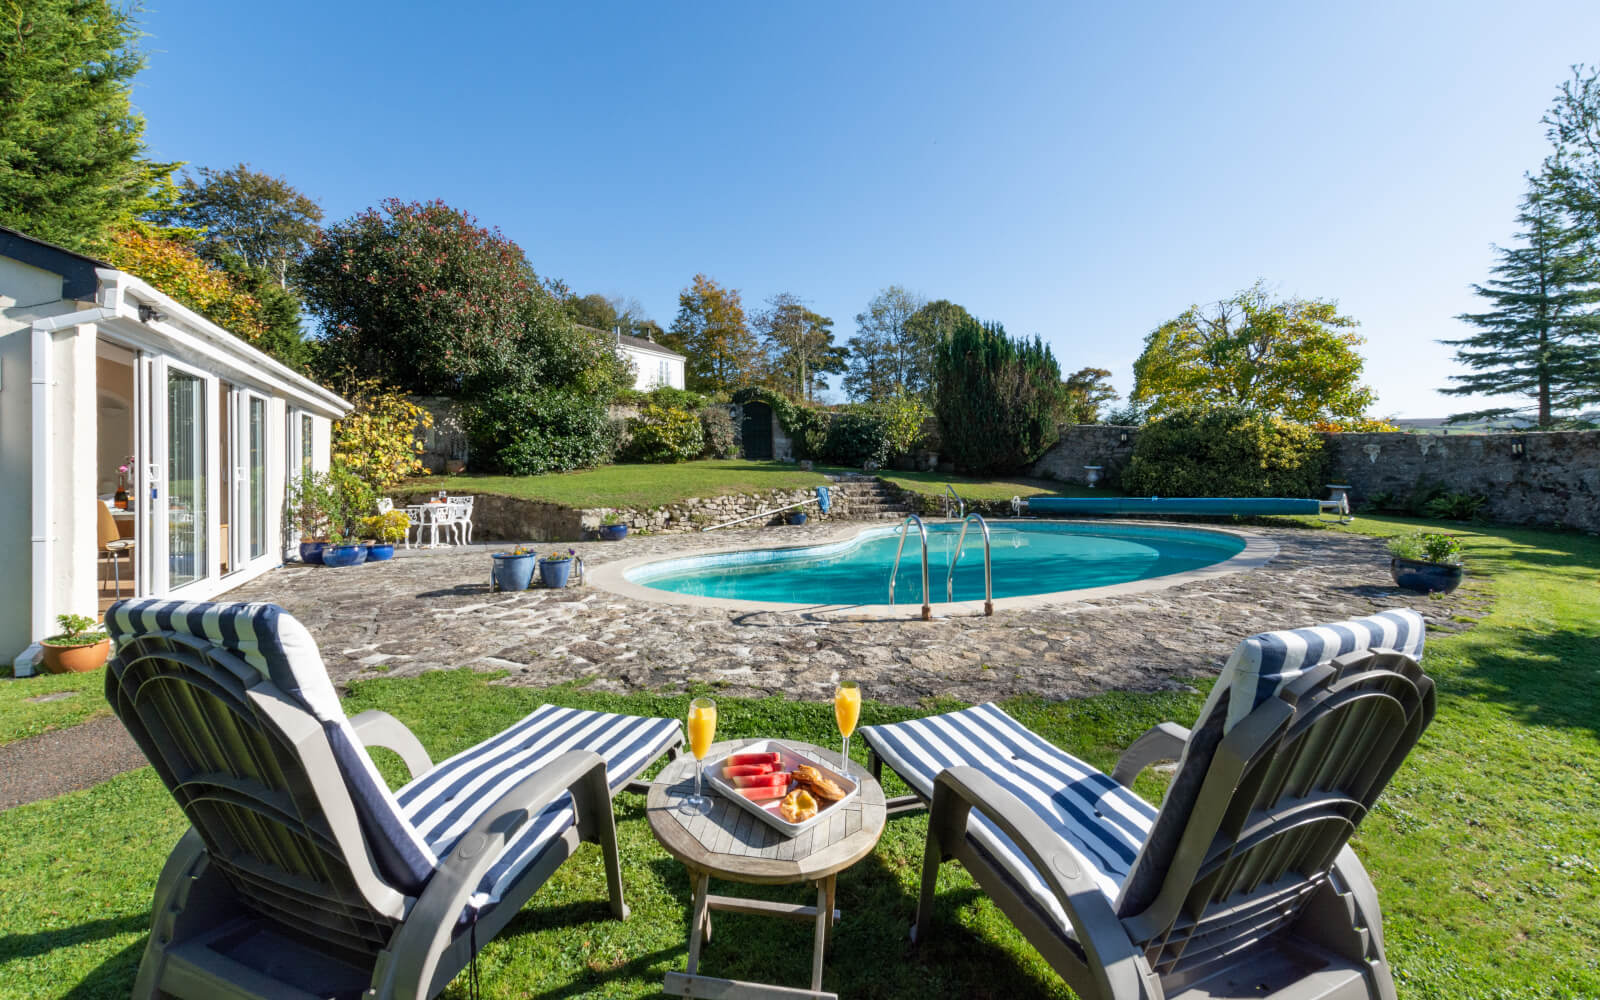 Holiday Cottages With Swimming Pools In Bradford To Rent - Save up to 60%